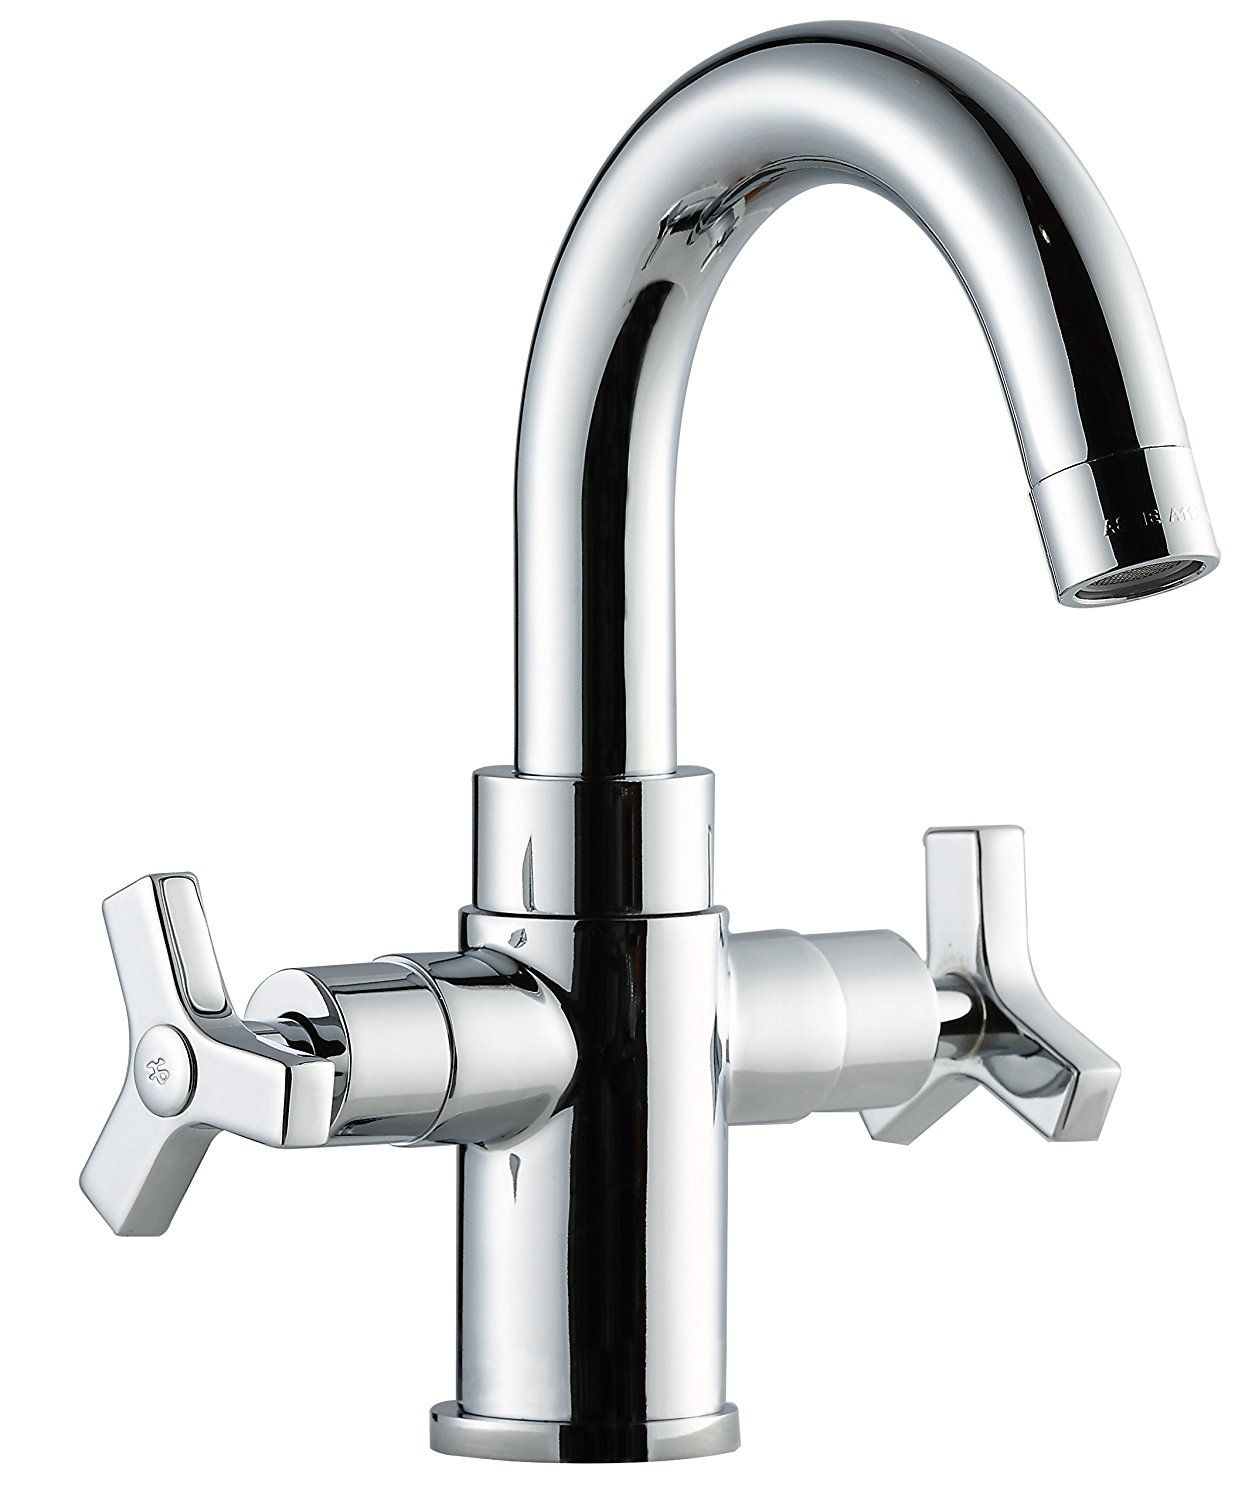 Derengge F-0081-CP Two-Handle Single Hole Bathroom Sink Faucet cUPC ...